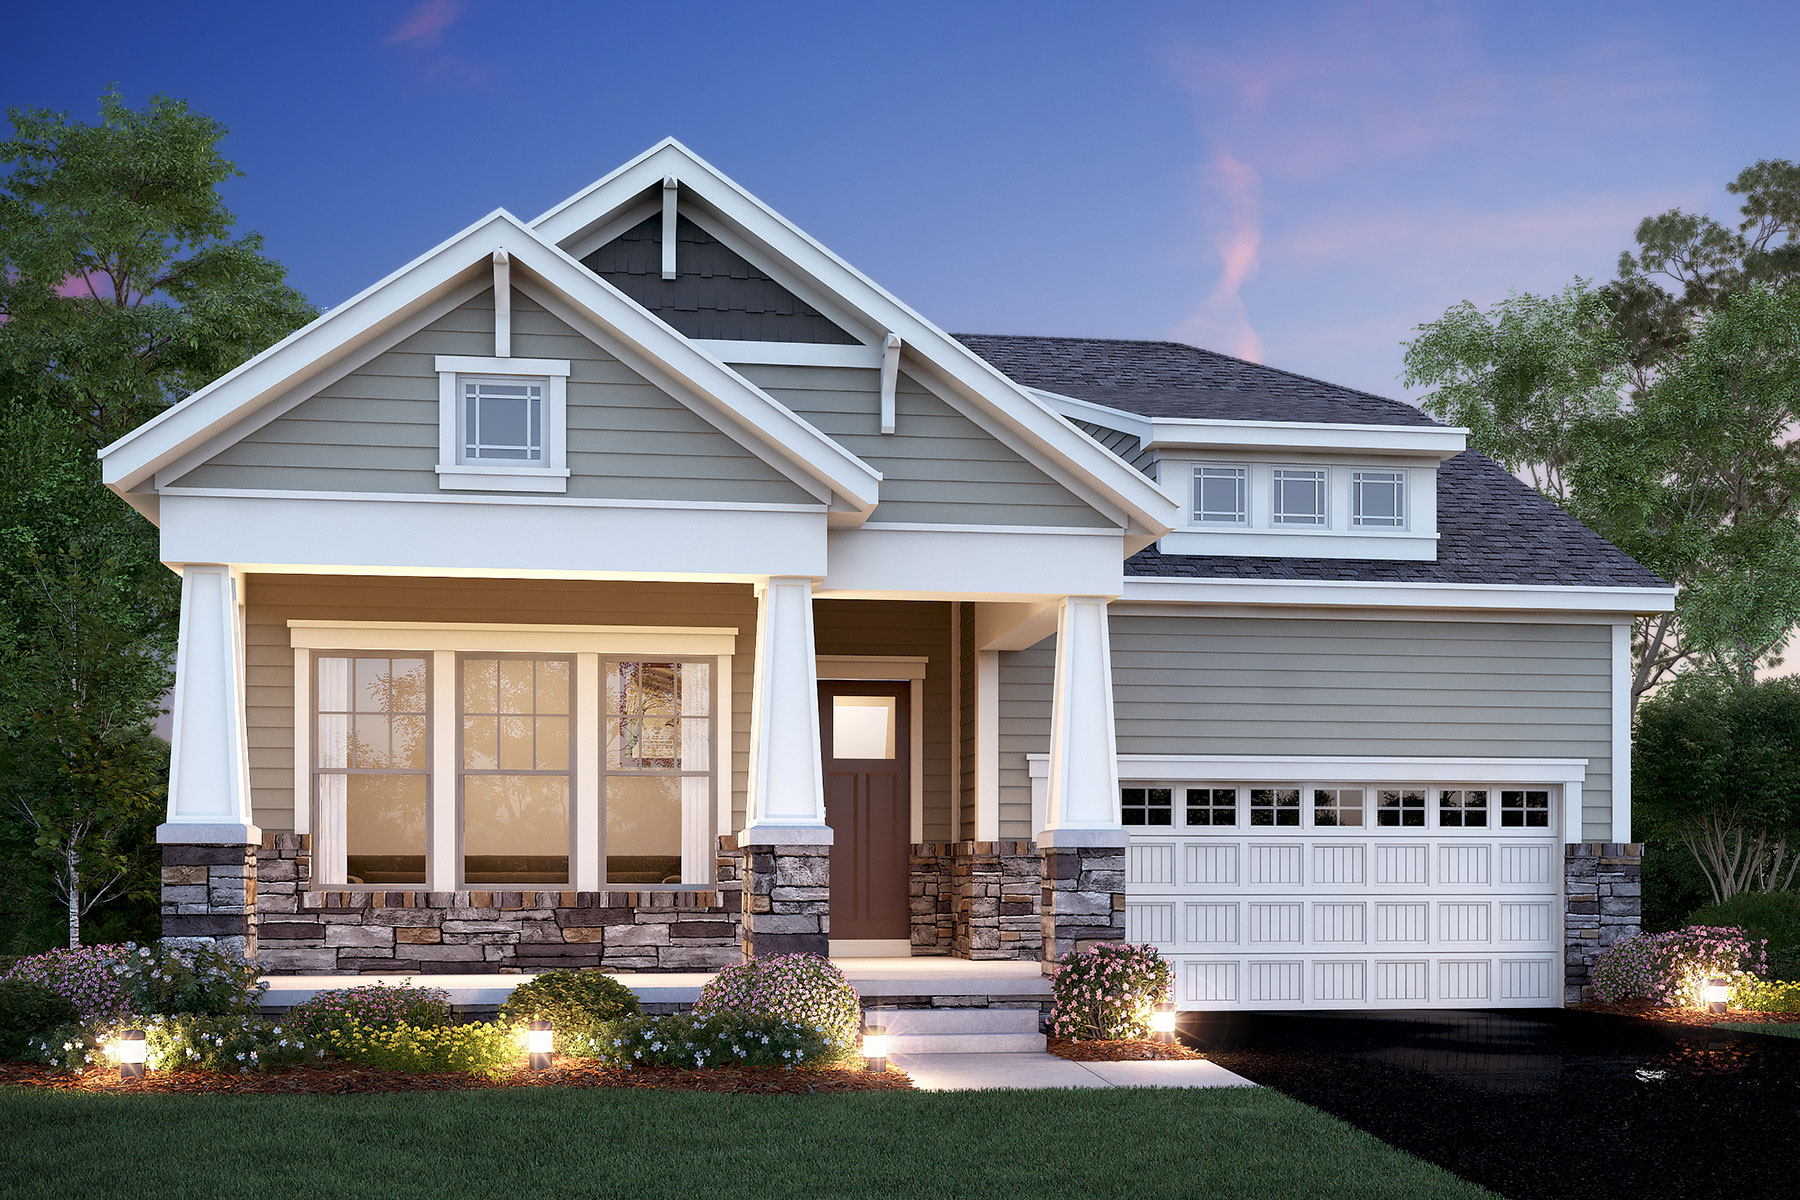 Sanctuary At The Lakes Luxury Patio Homes   Homes For Sale In Westerville,  OH   M/I Homes